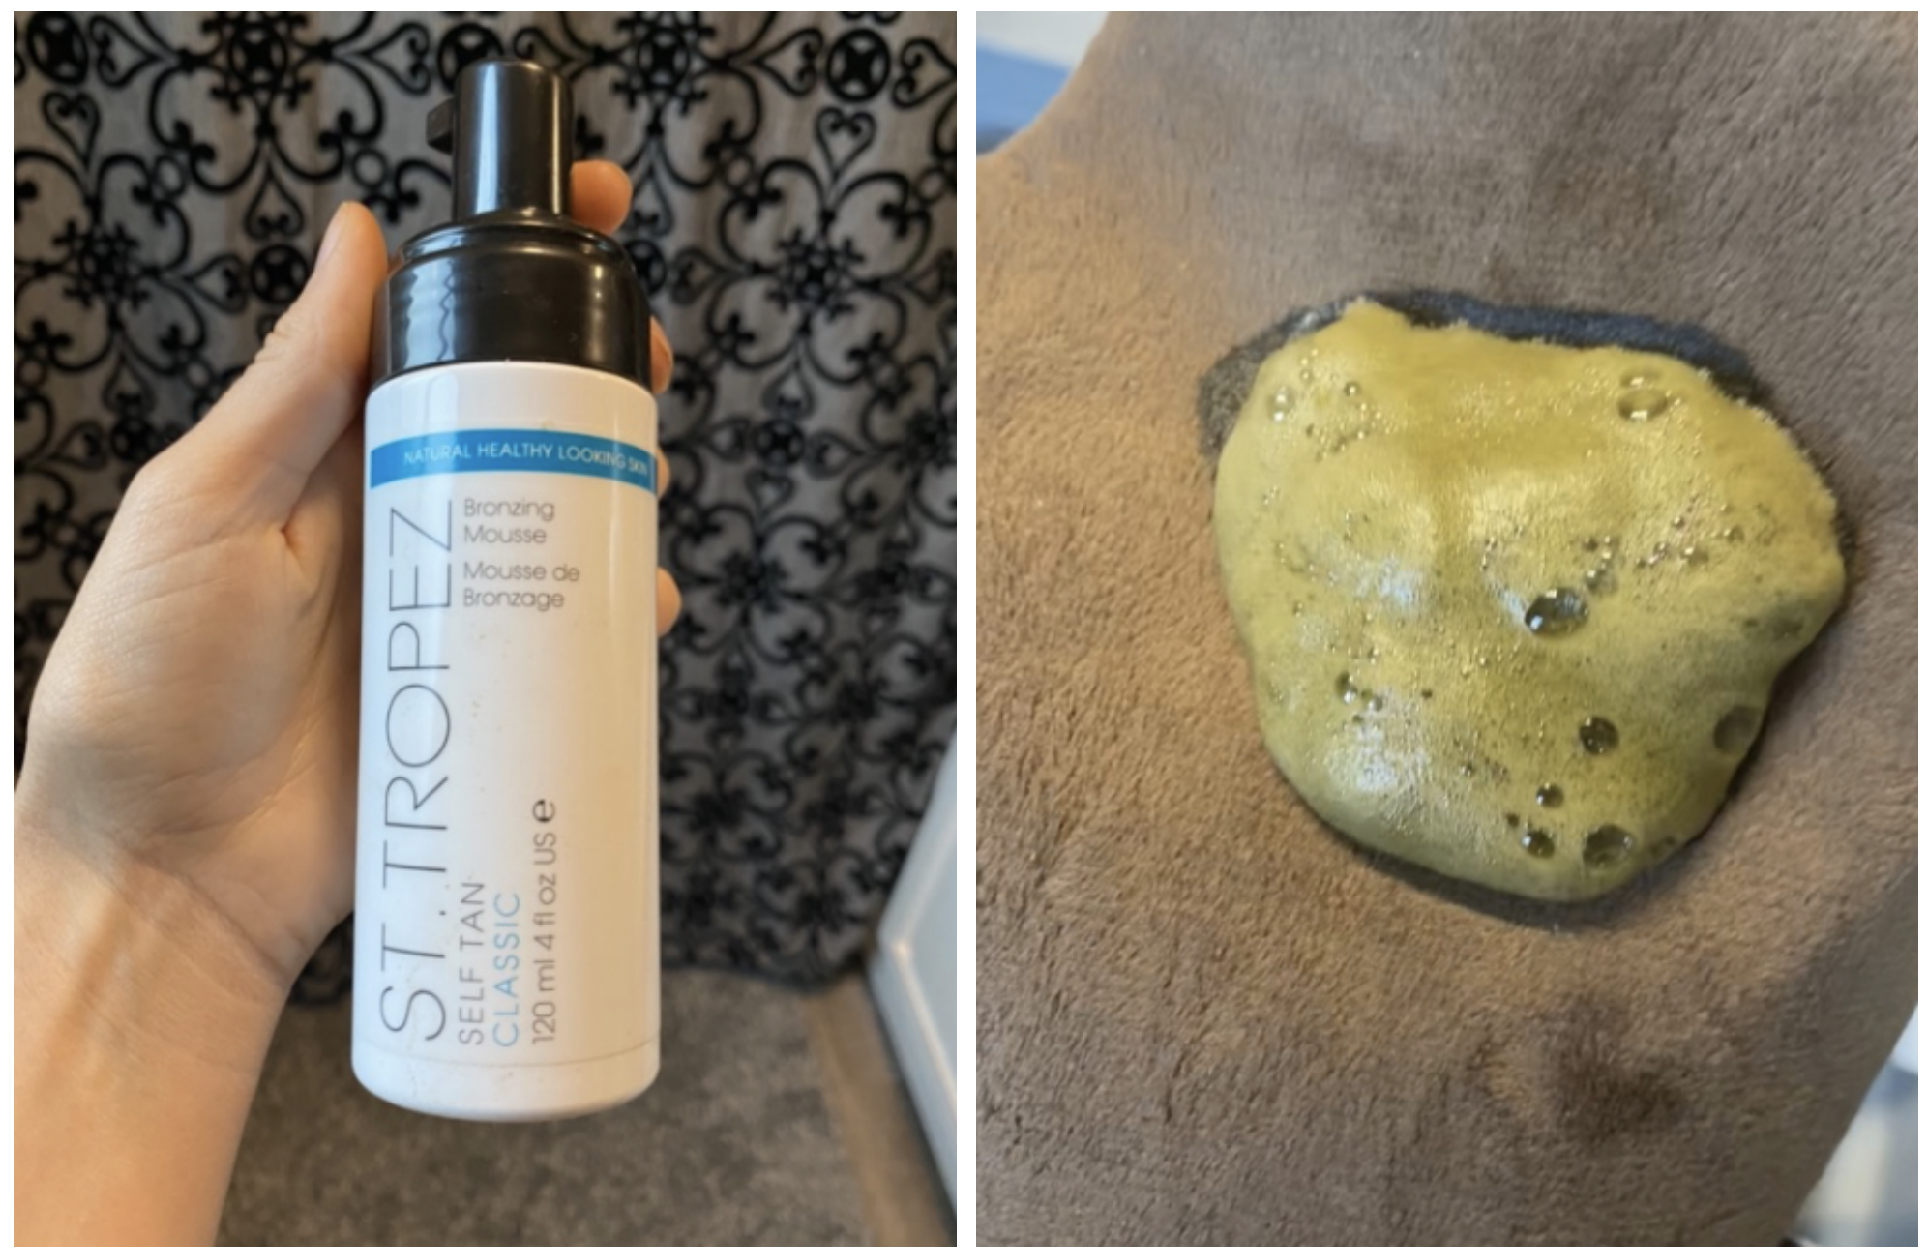 Photo of self tan bottle and the product which was watery and foamy.